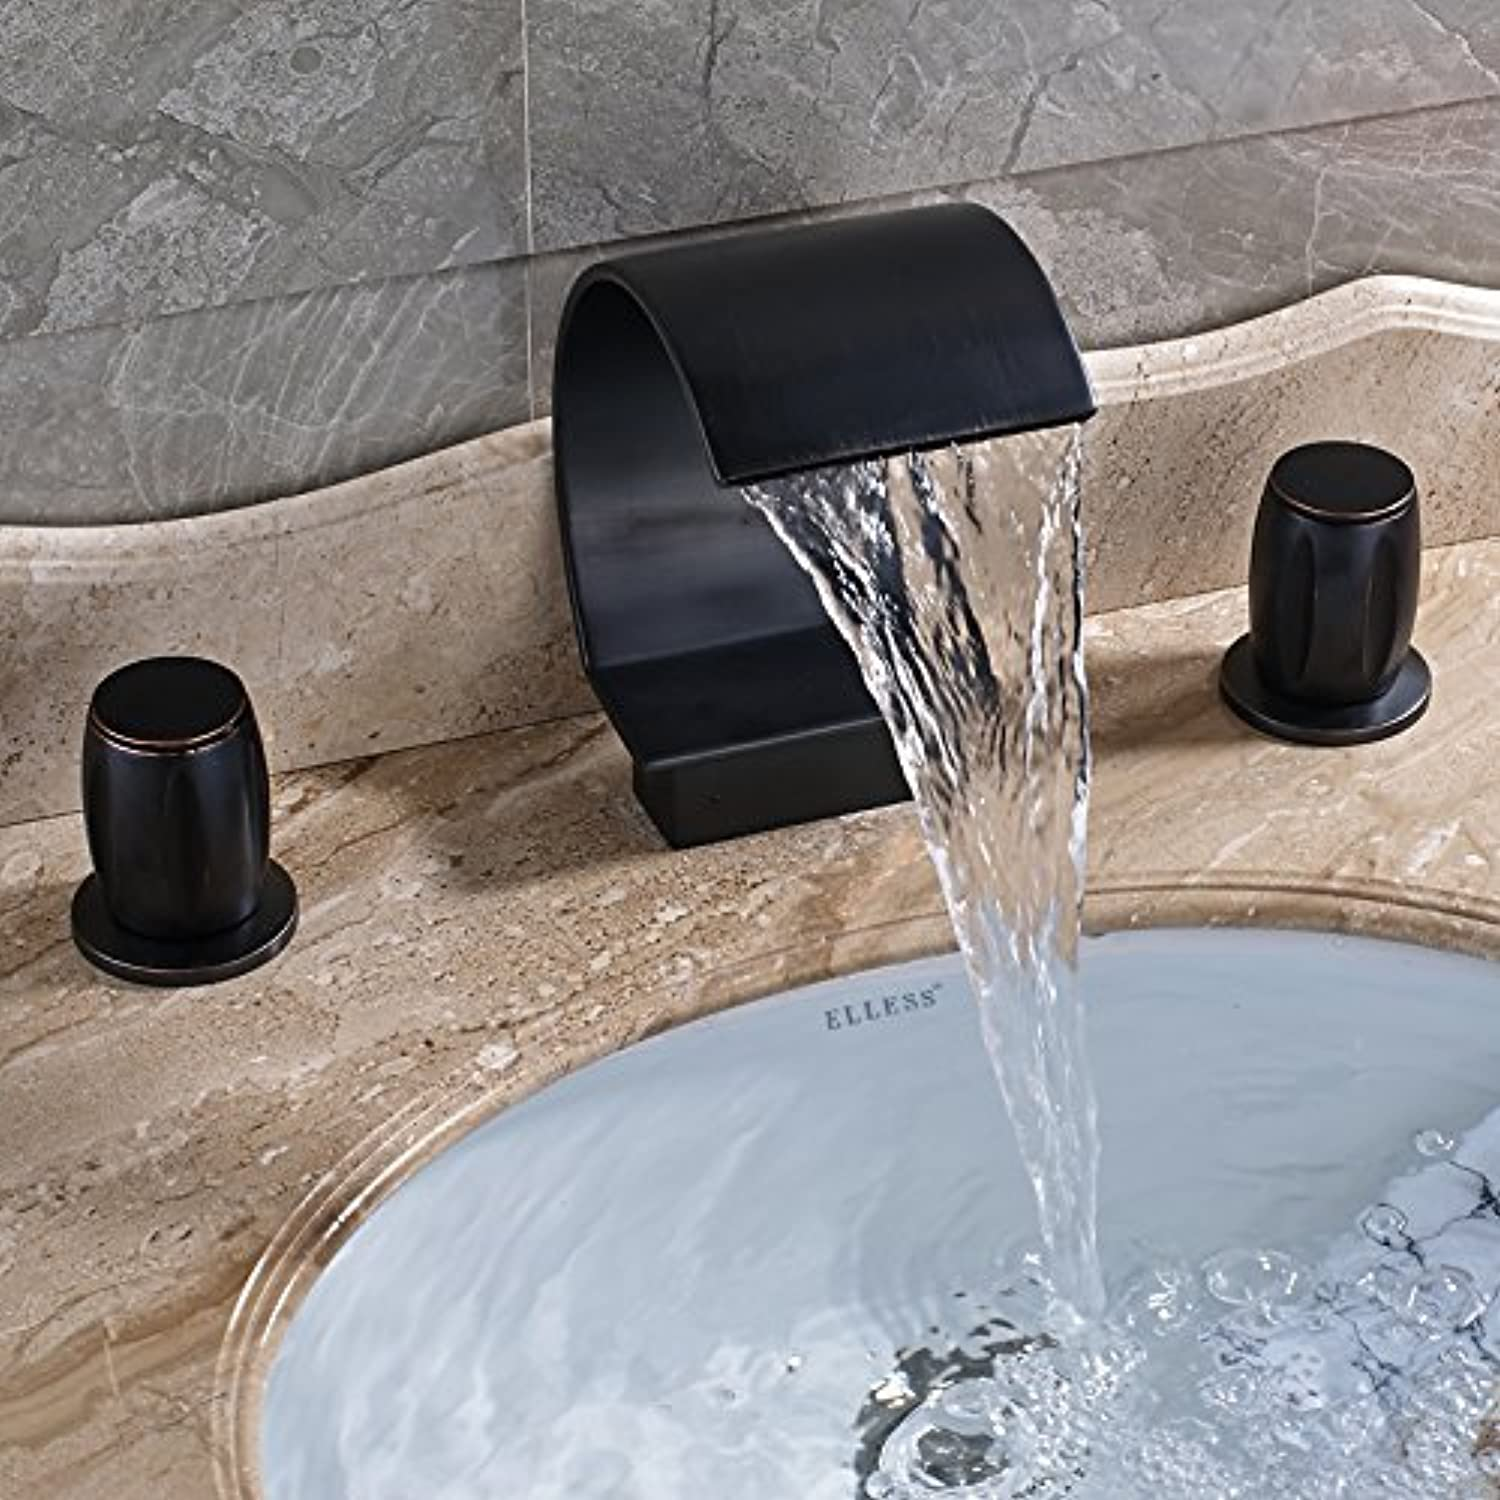 The Oil Rubbed Bronze Bath Rooms for 3 pcs wash Basin Sink Mixer Water Tap Faucet Hot & Cold Deck Mount Part of The Water tap